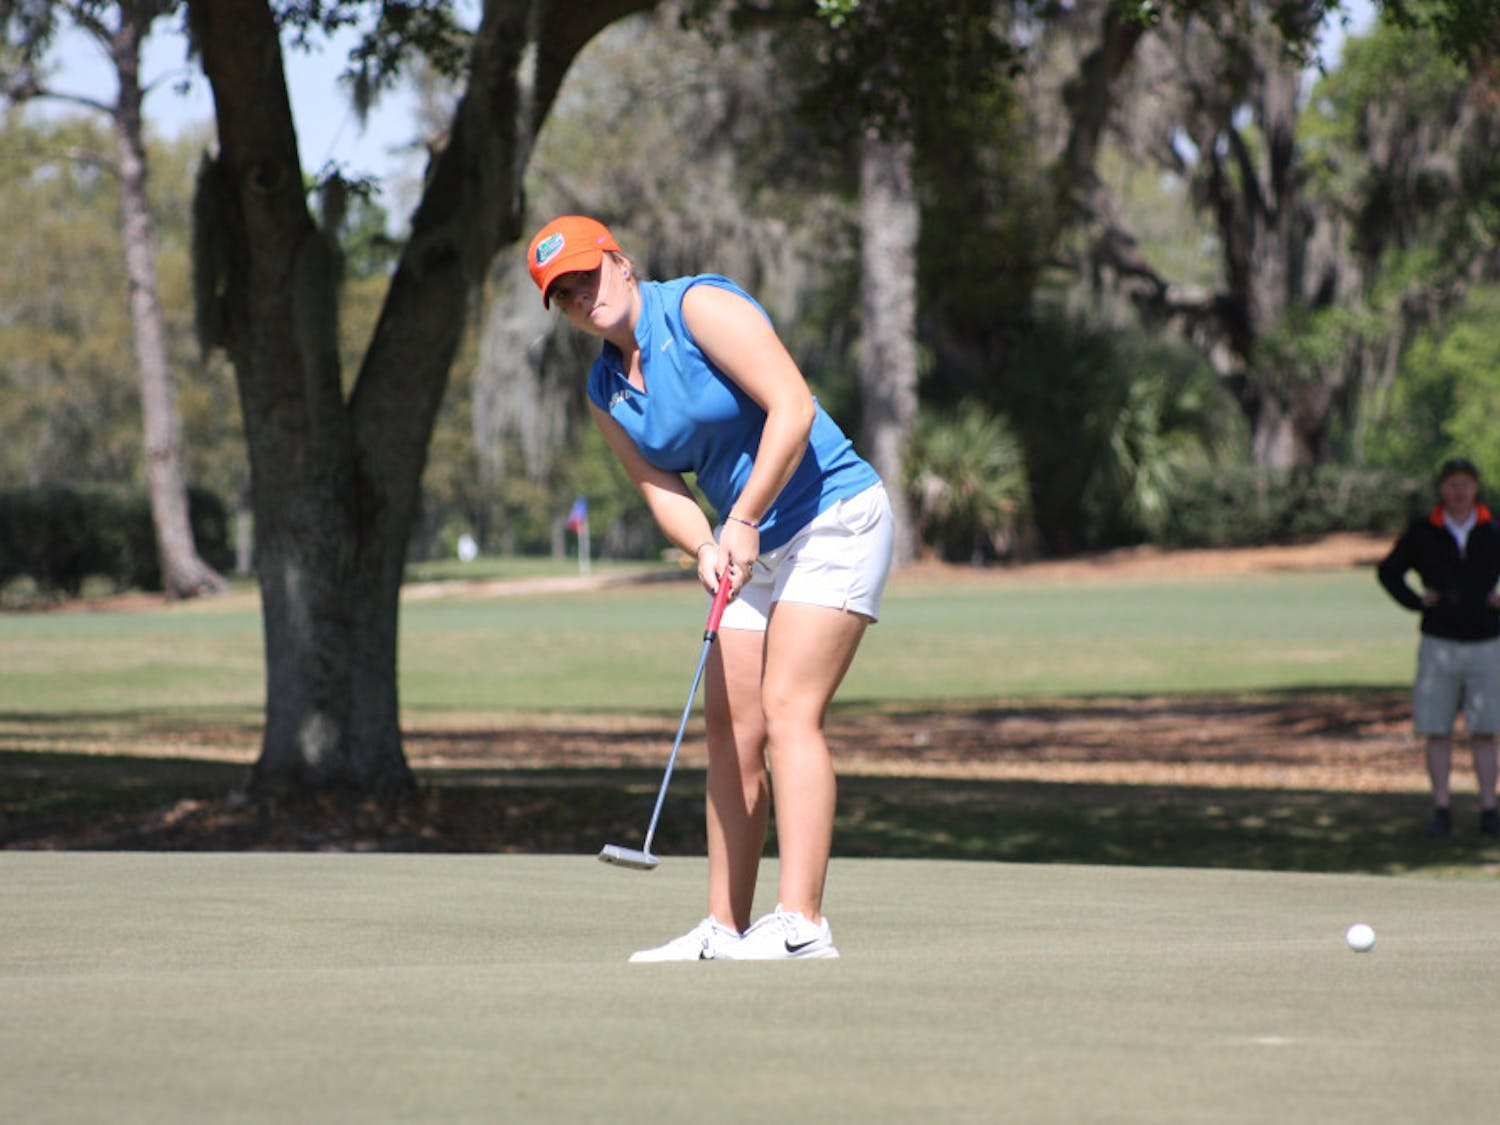 Junior Marta Perez (+1) is in eighth after two rounds at the Longhorn Invite. UF (+10) is currently in 10th.